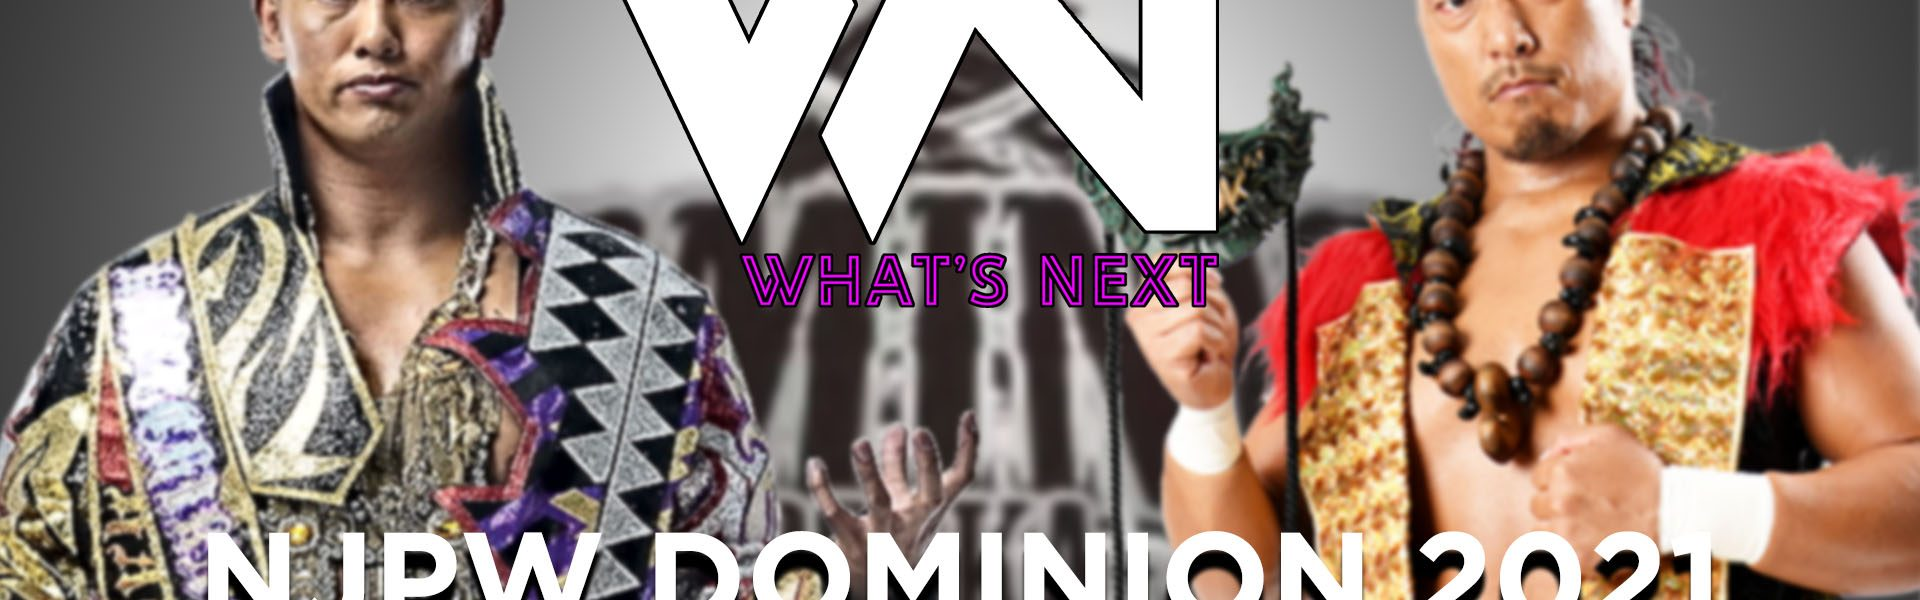 NJPW DOMINION 2021 PREVIEW - What's Next #127